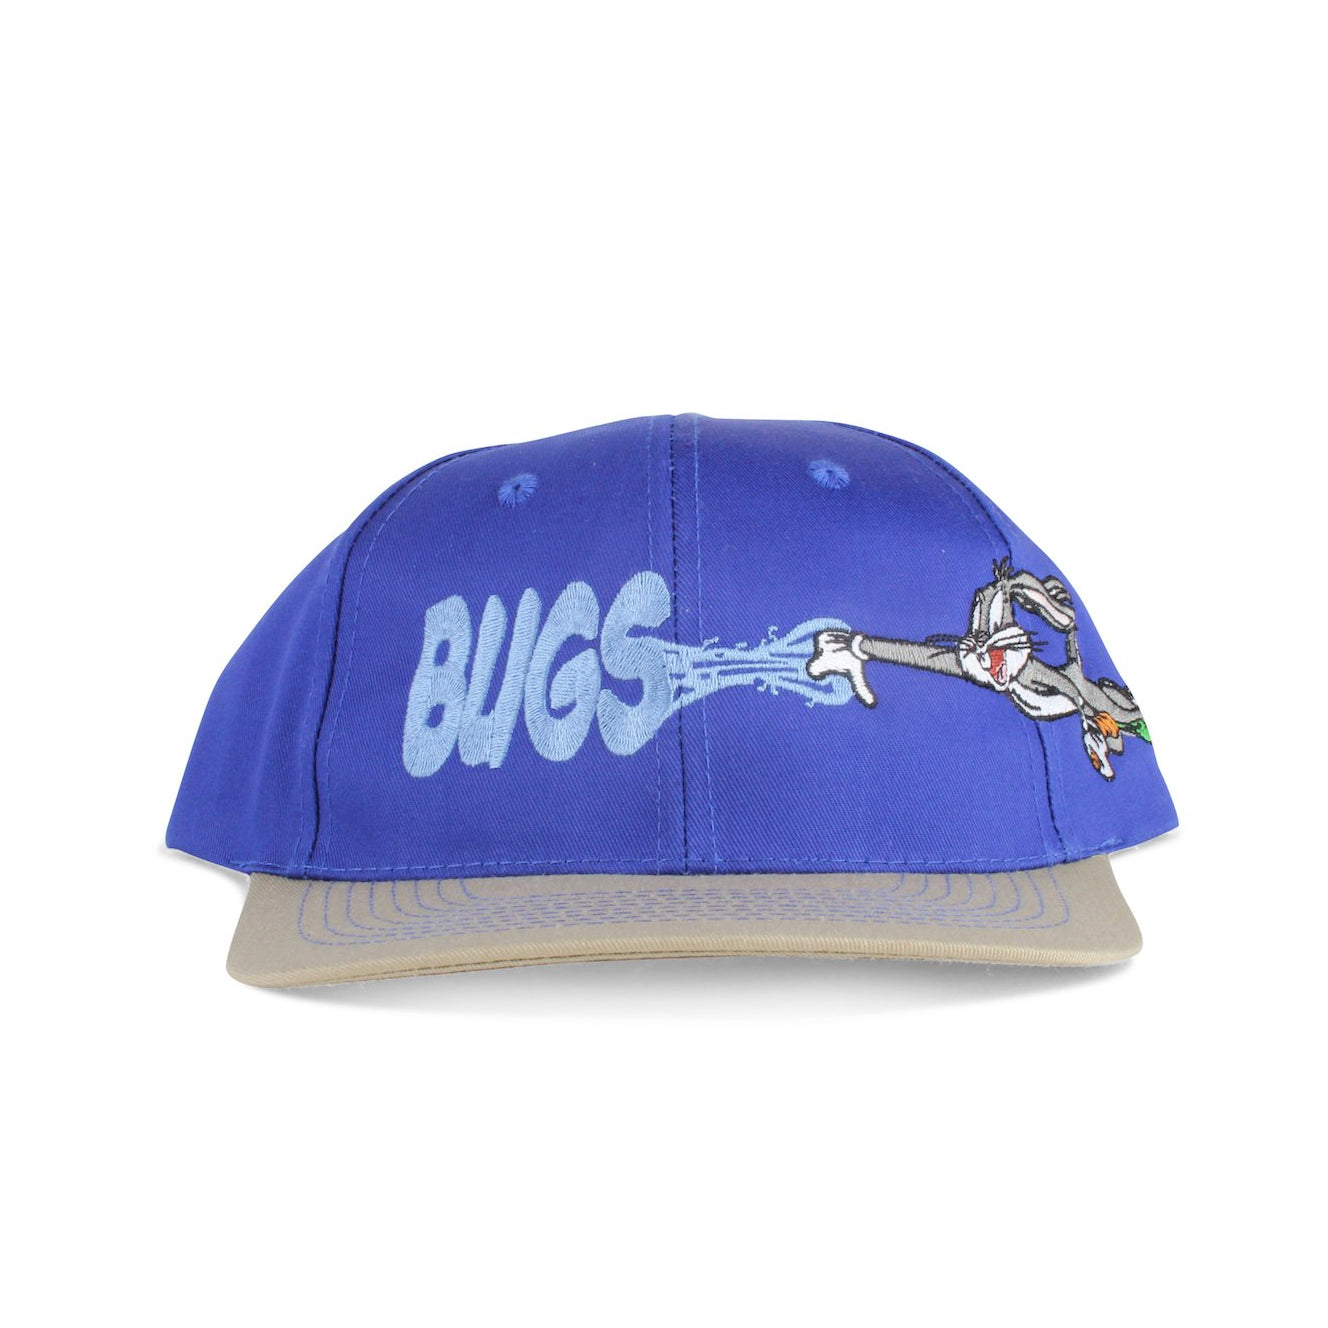 reputable site b5f3e b5c39 Vintage 1995 Bugs Bunny Looney Tunes Blue Snapback Hat